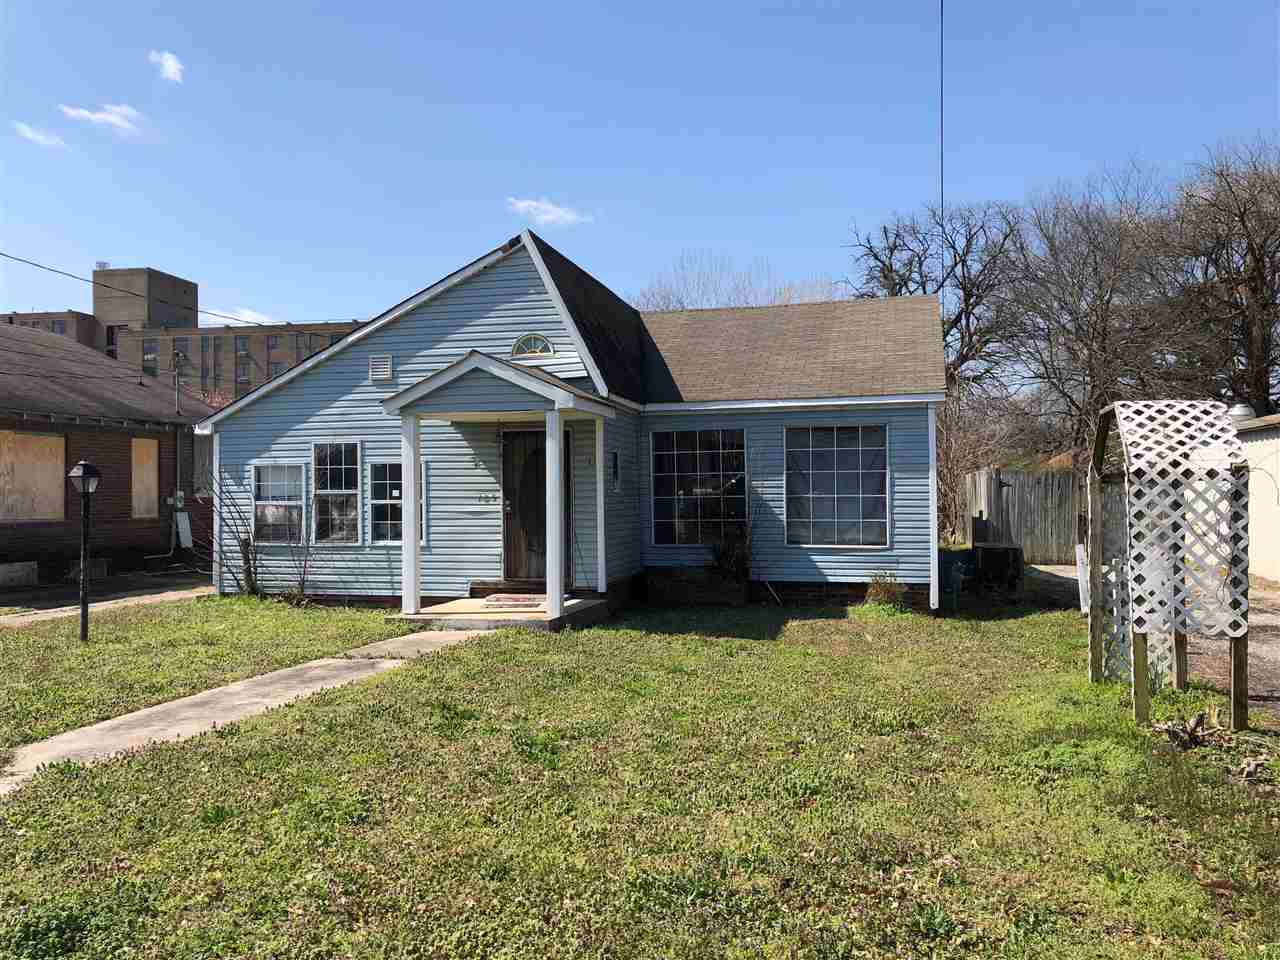 125 McCorry Street,Jackson,Tennessee 38301,2 Bedrooms Bedrooms,1 BathroomBathrooms,Residential,125 McCorry Street,181804